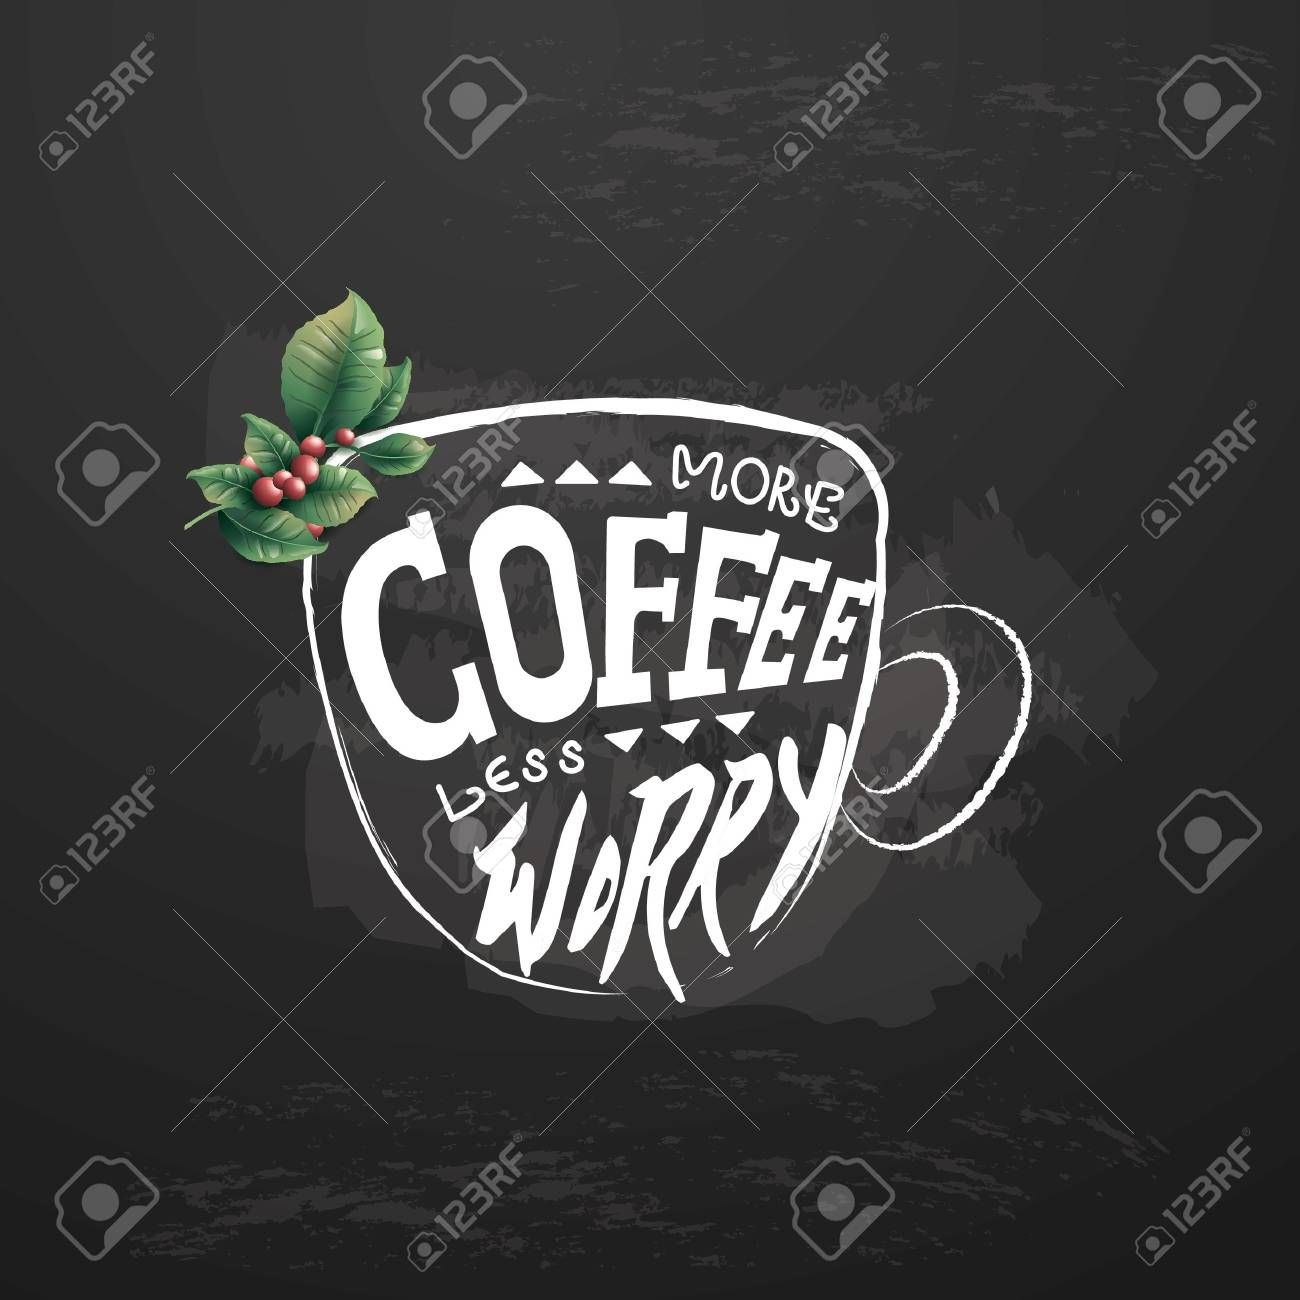 more coffee less worry Illustration